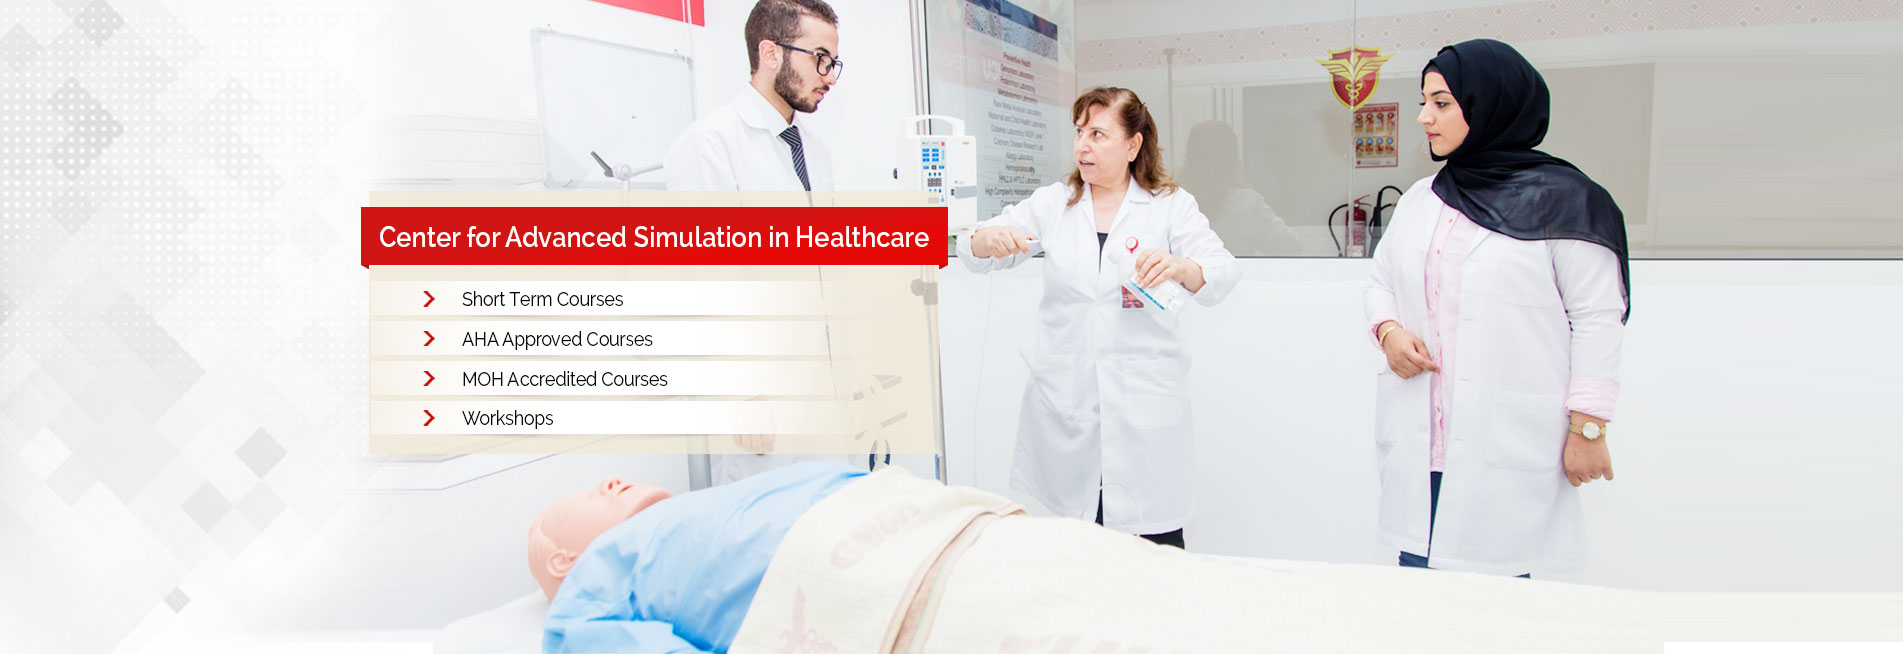 Center for Advanced Simulation in Healthcare